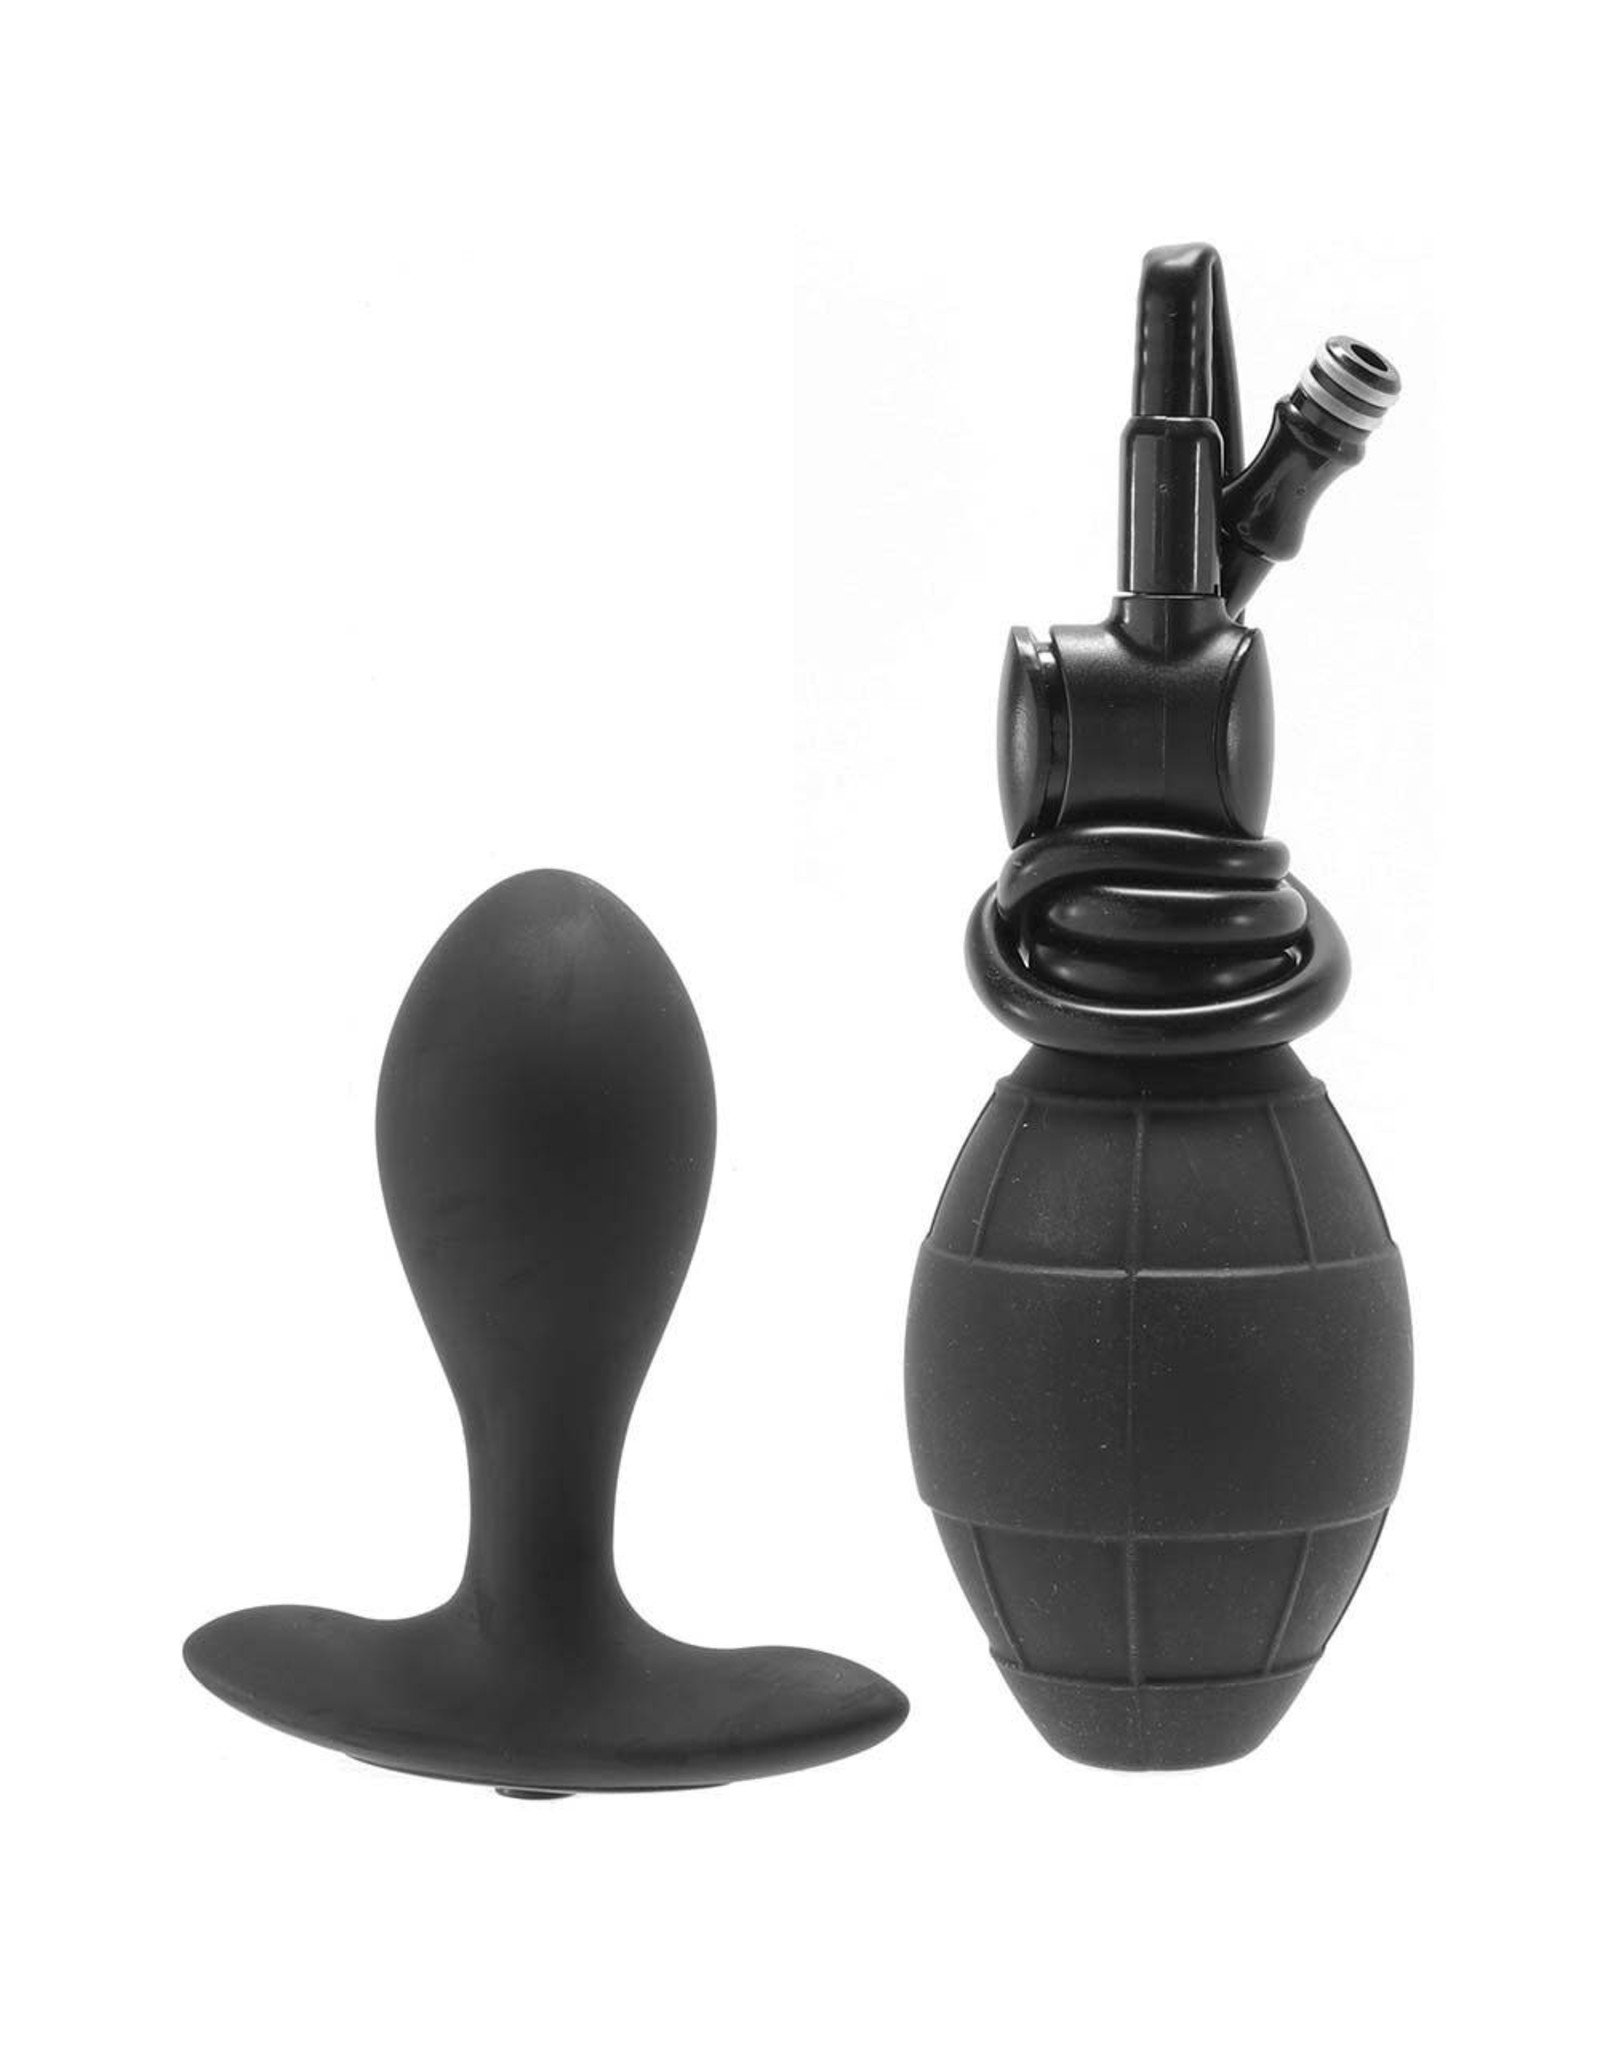 Calexotics Weighted Silicone Inflatable Plug